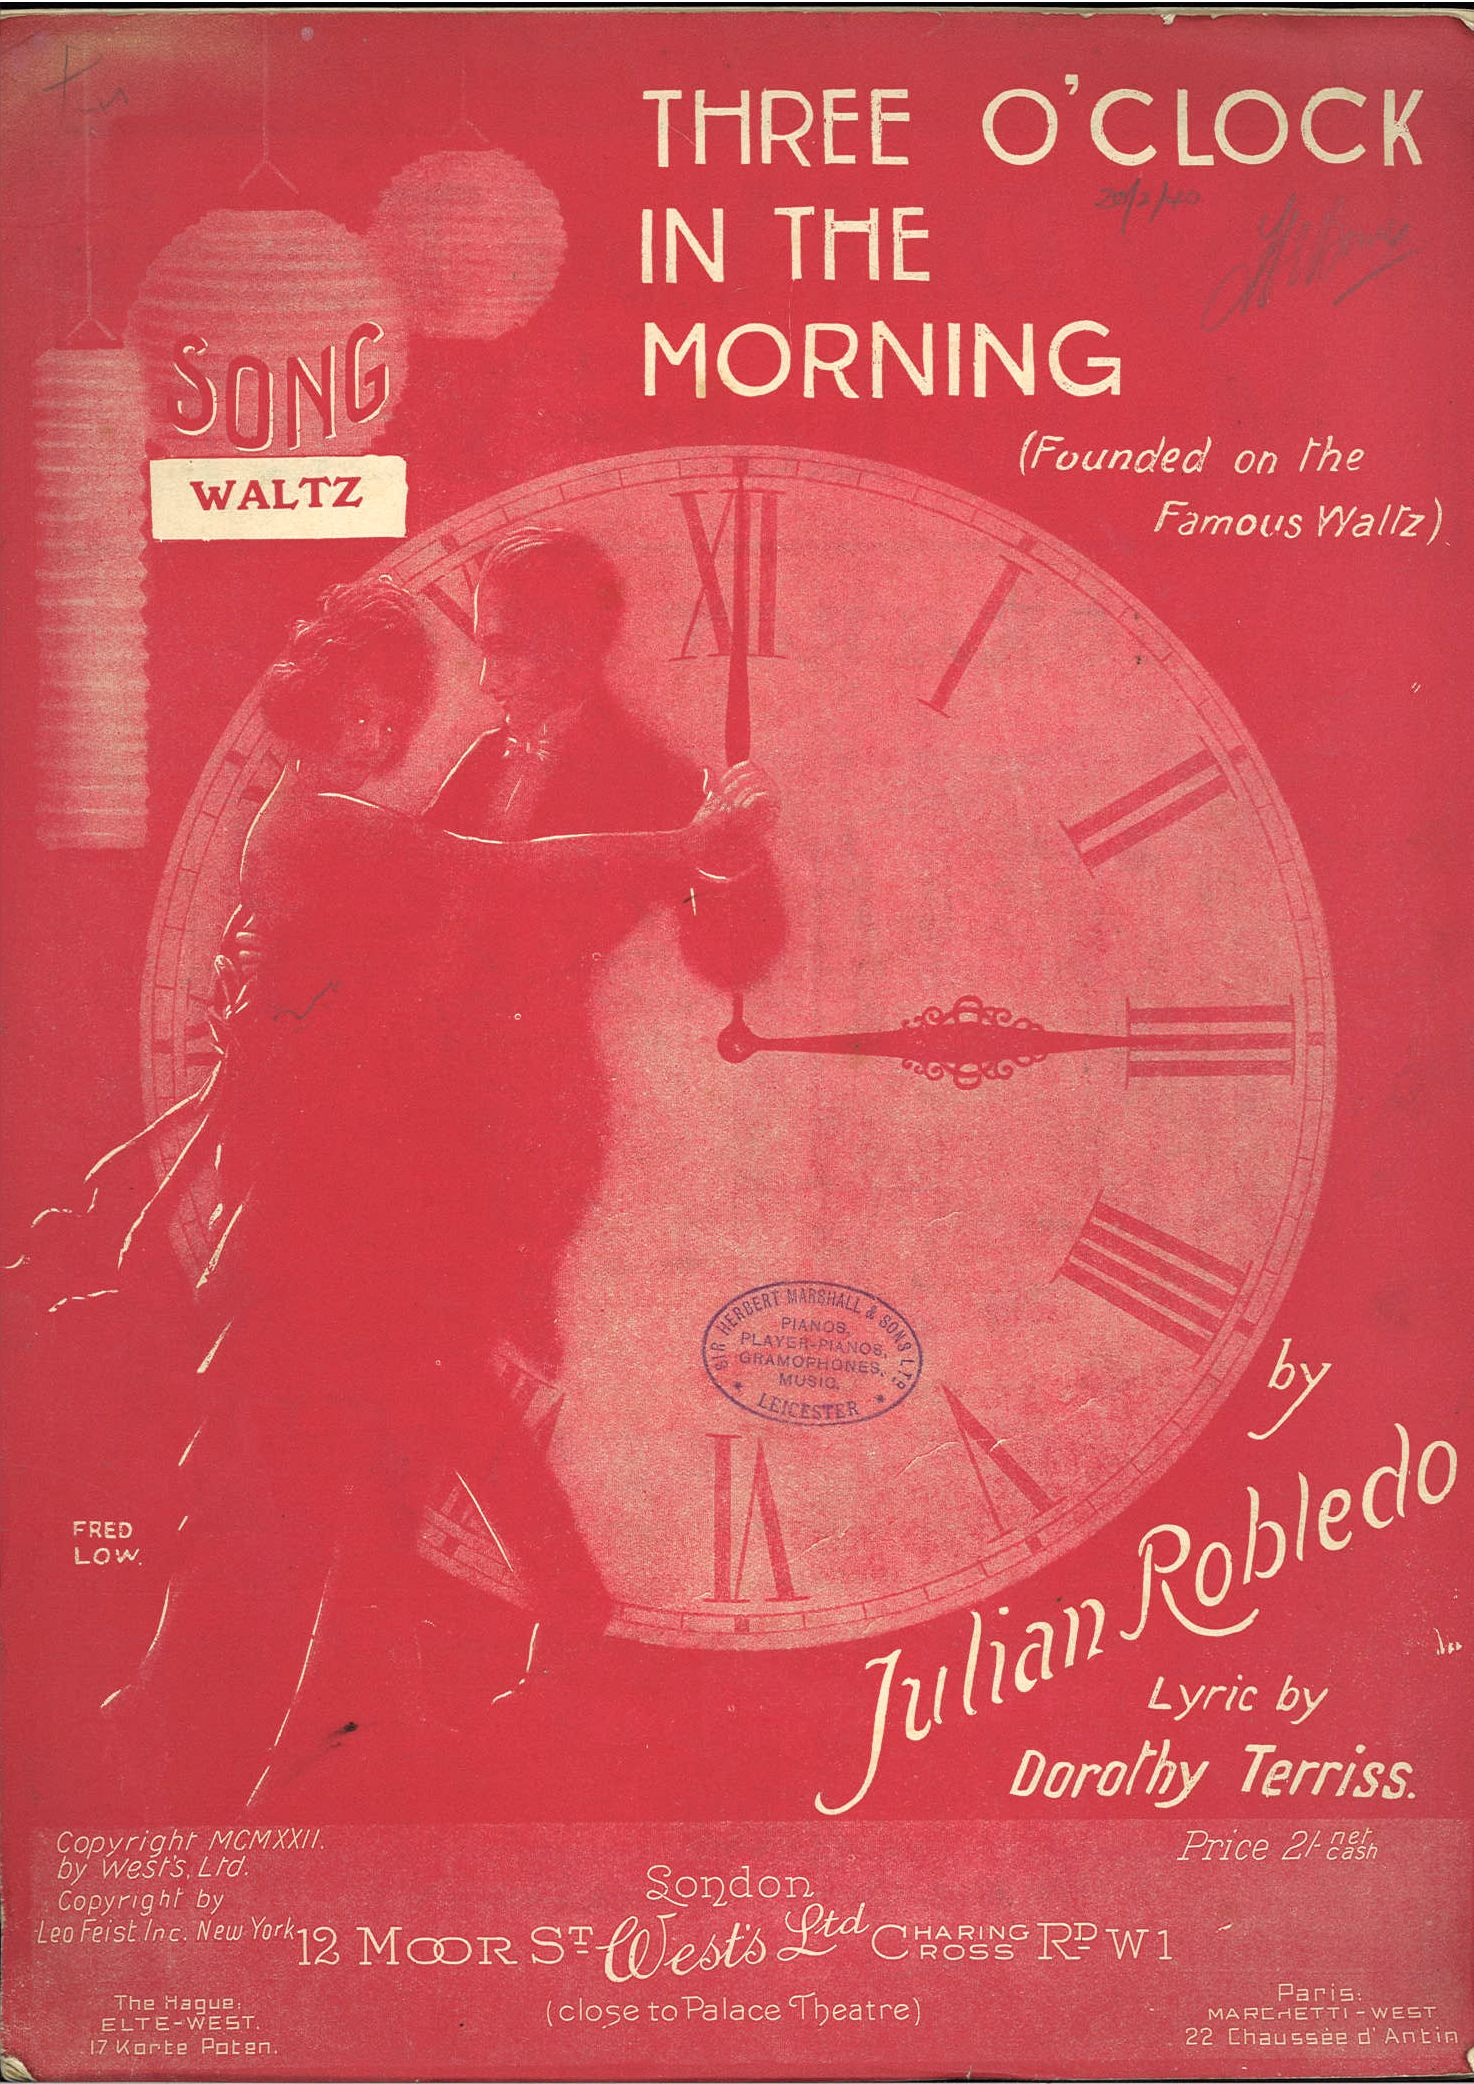 THREE O'CLOCK IN THE MORNING - JULIAN ROBLEDO - SPARTITO-SHEET MUSIC